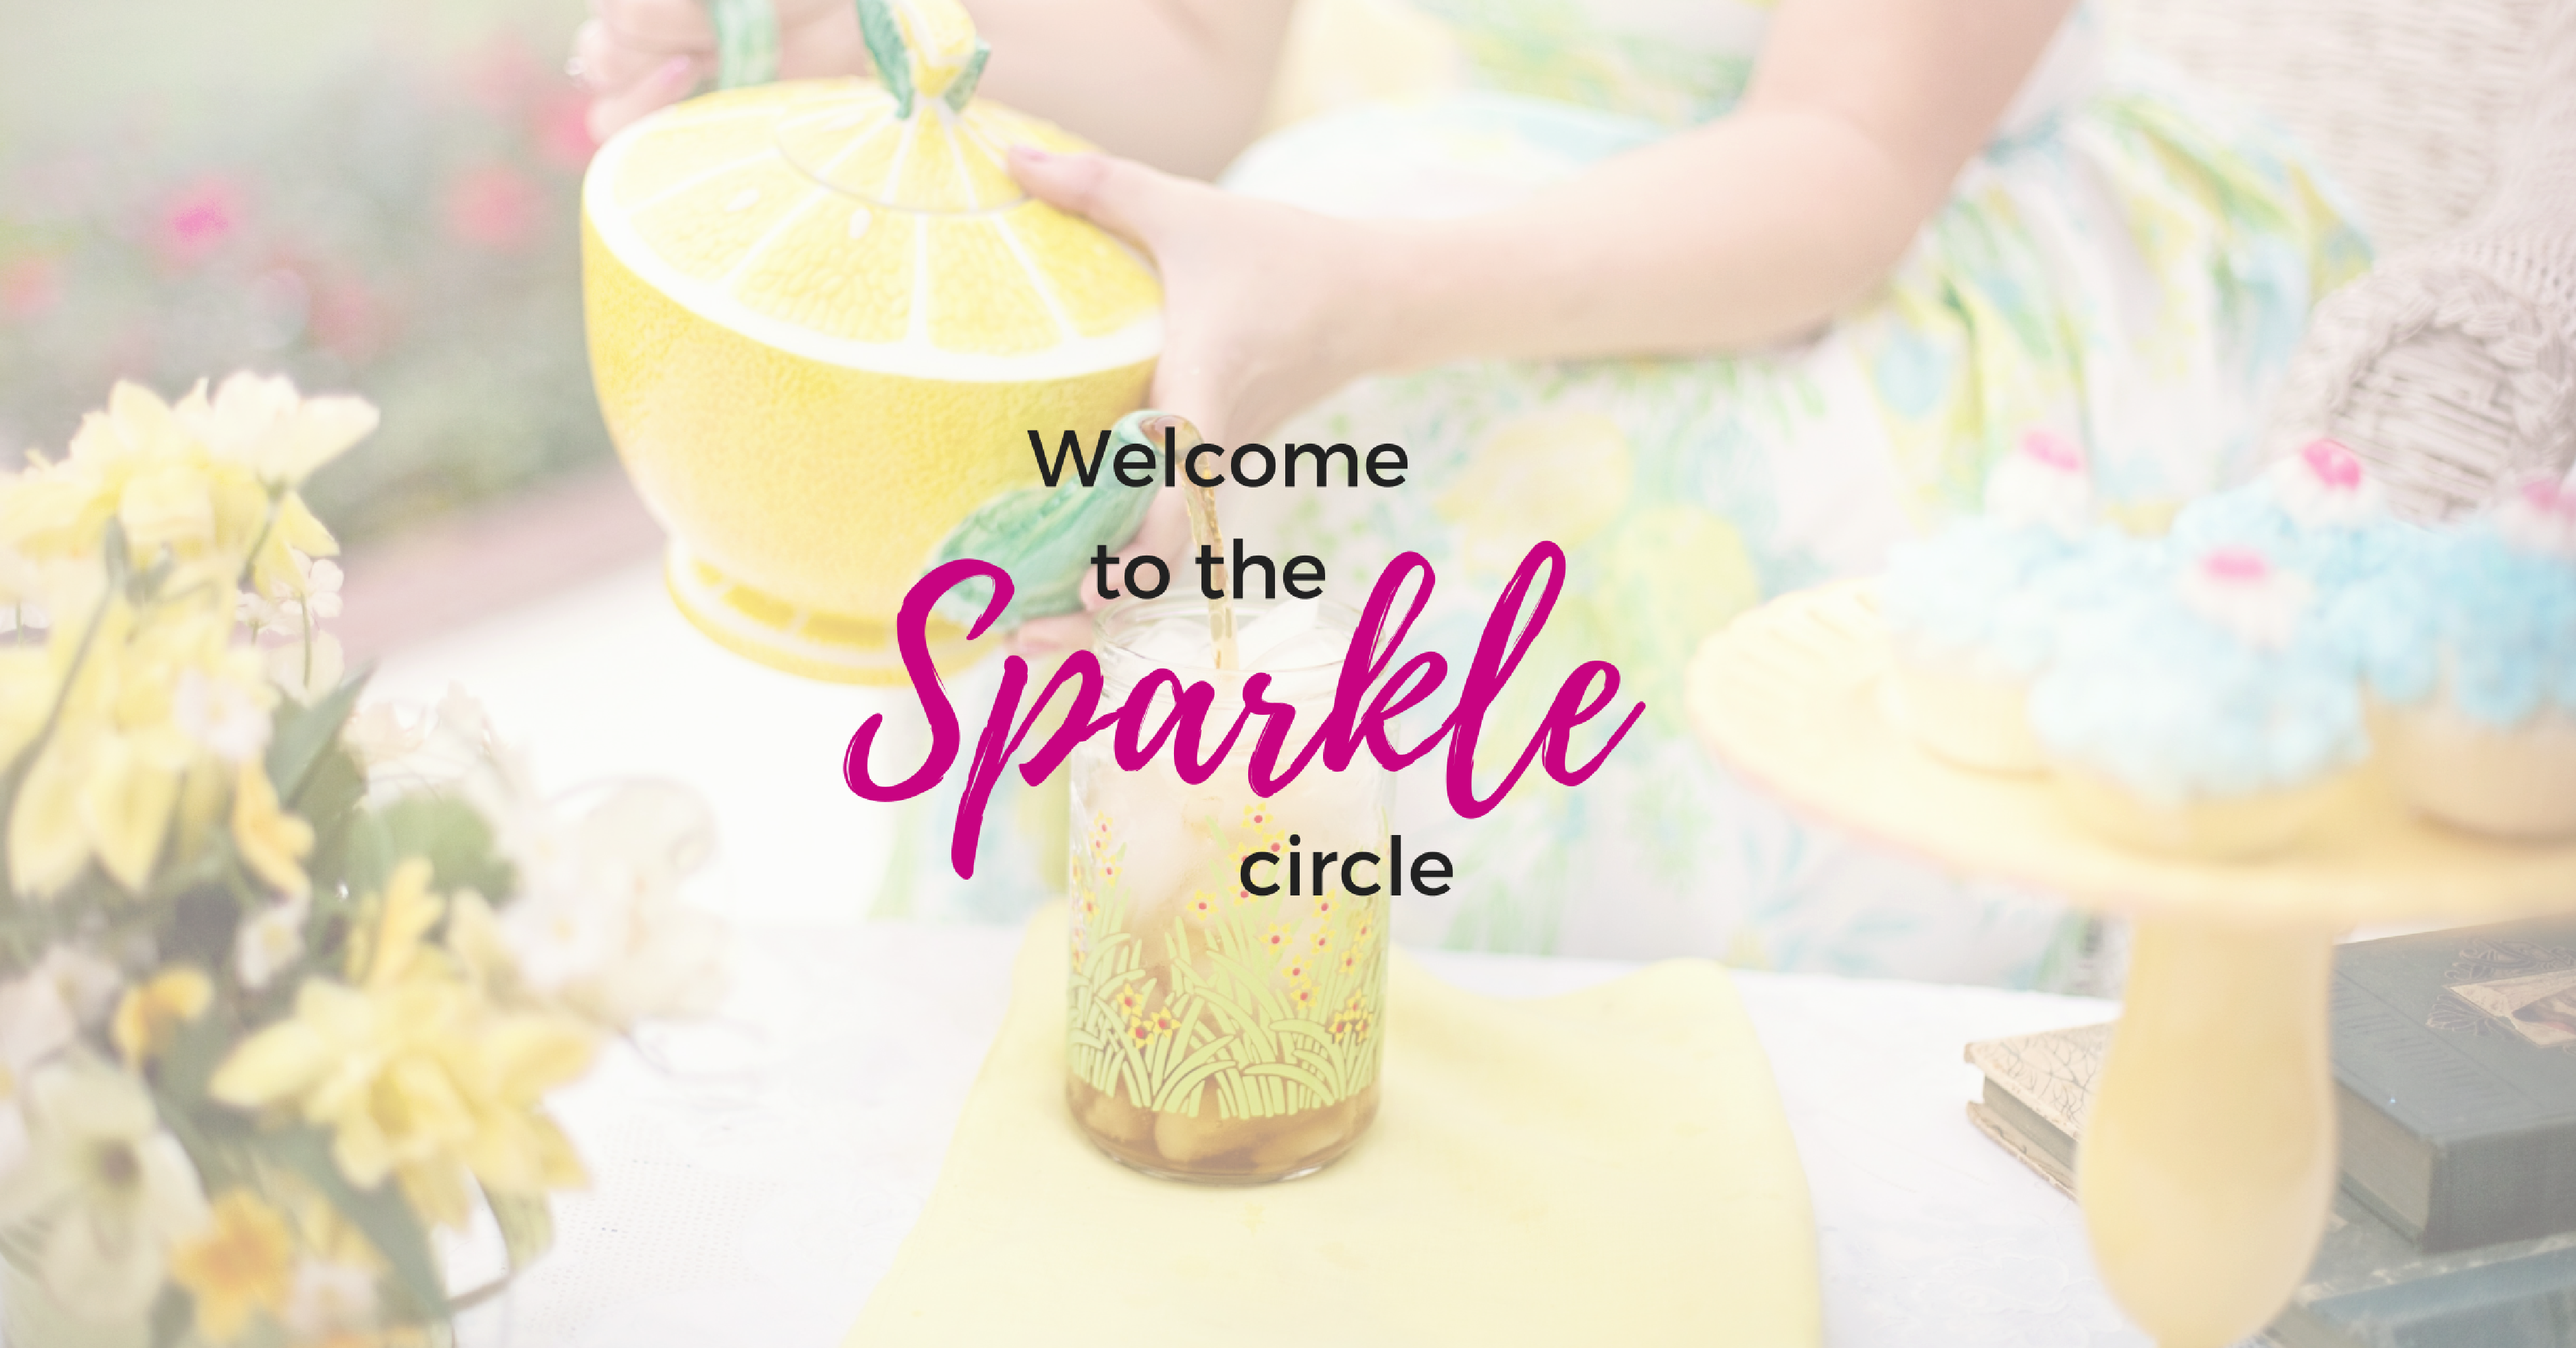 The friendship crisis plagues just about every modern woman but it's clear that we need friends even more than ever. Three sisters join together to create The Sparkle Circle where you're invited to lighten your load, share laughter and a happy tear or two. You're welcome here!